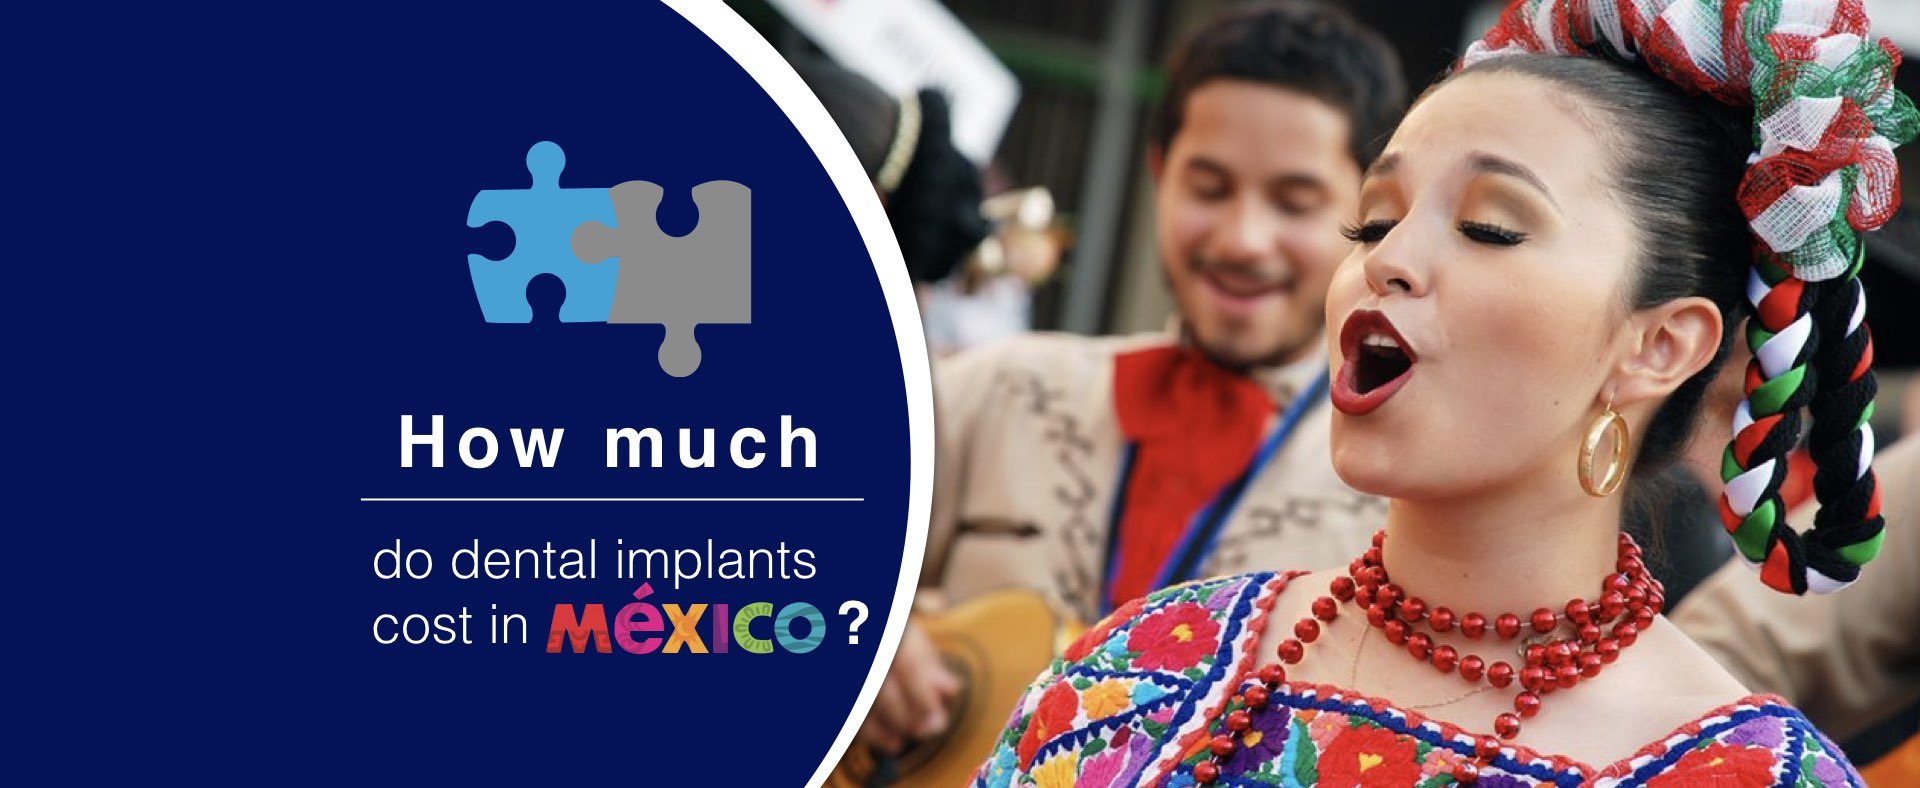 How much do dental implants cost in Mexico?